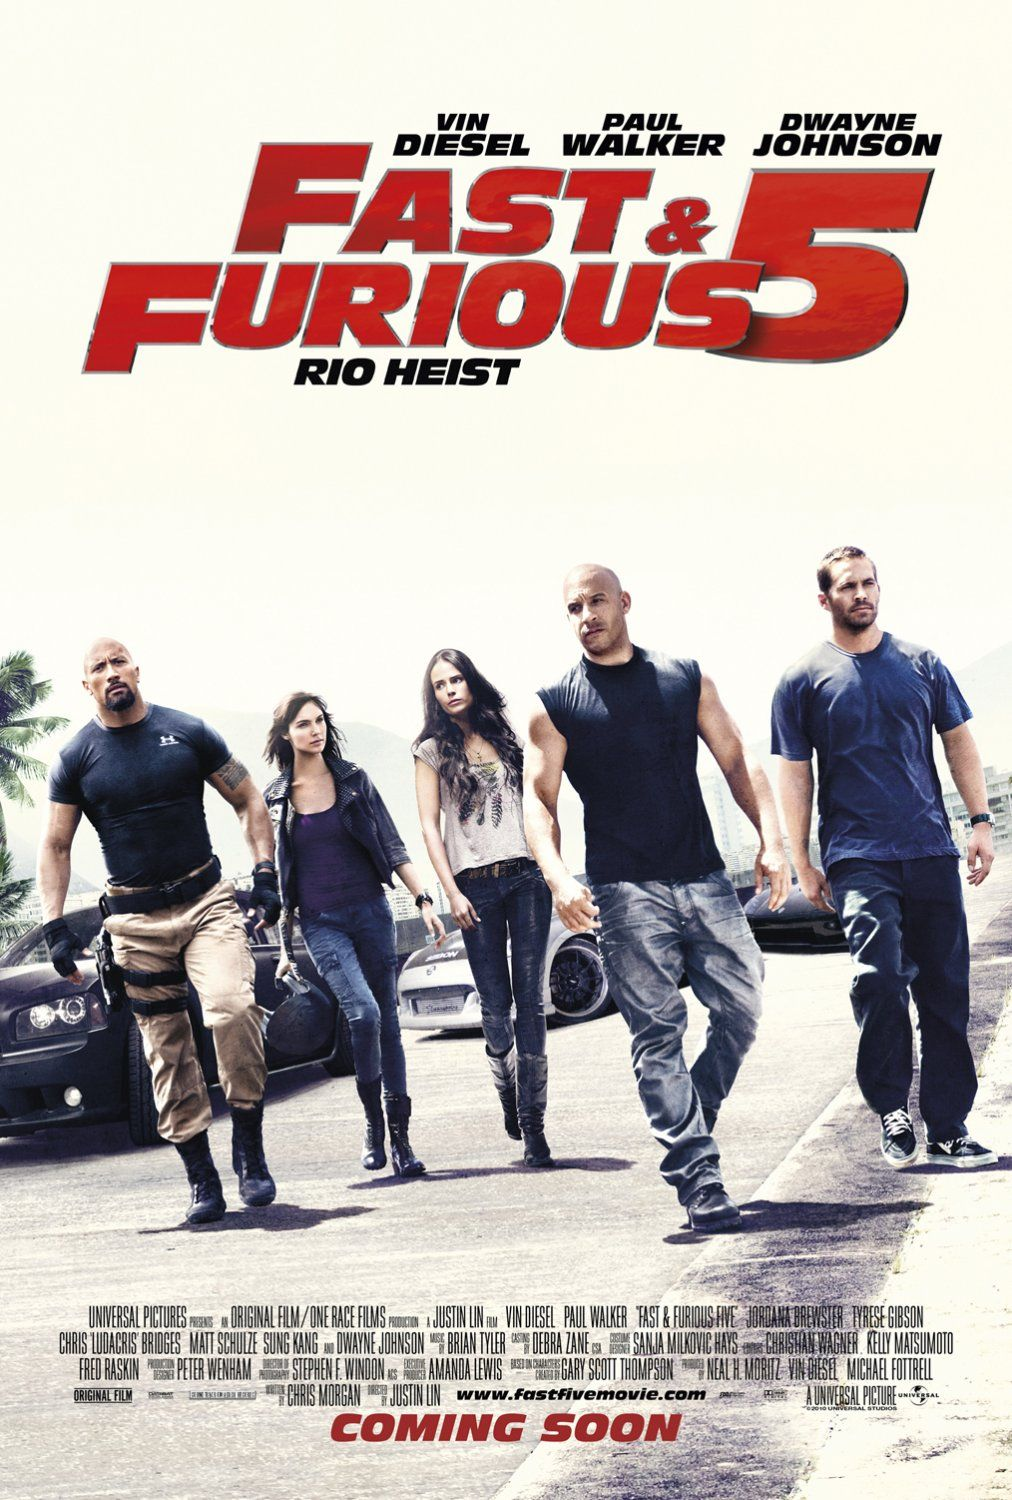 FAST FIVE (FAST & FURIOUS 5: THE RIO HEIST)